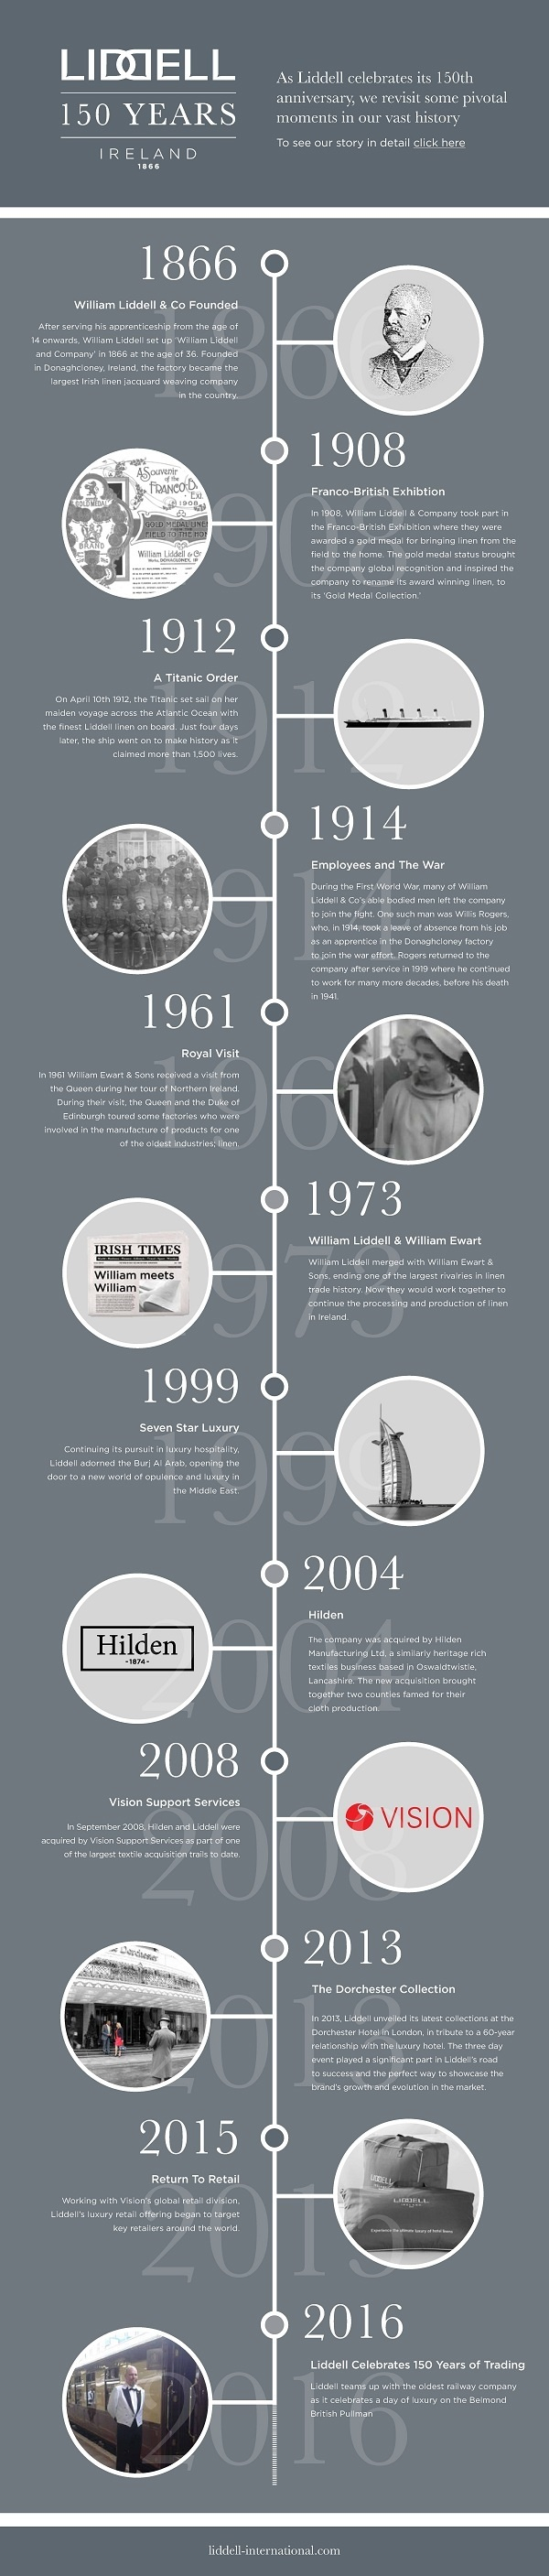 Timeline showing the 150 year history of linen company Liddell